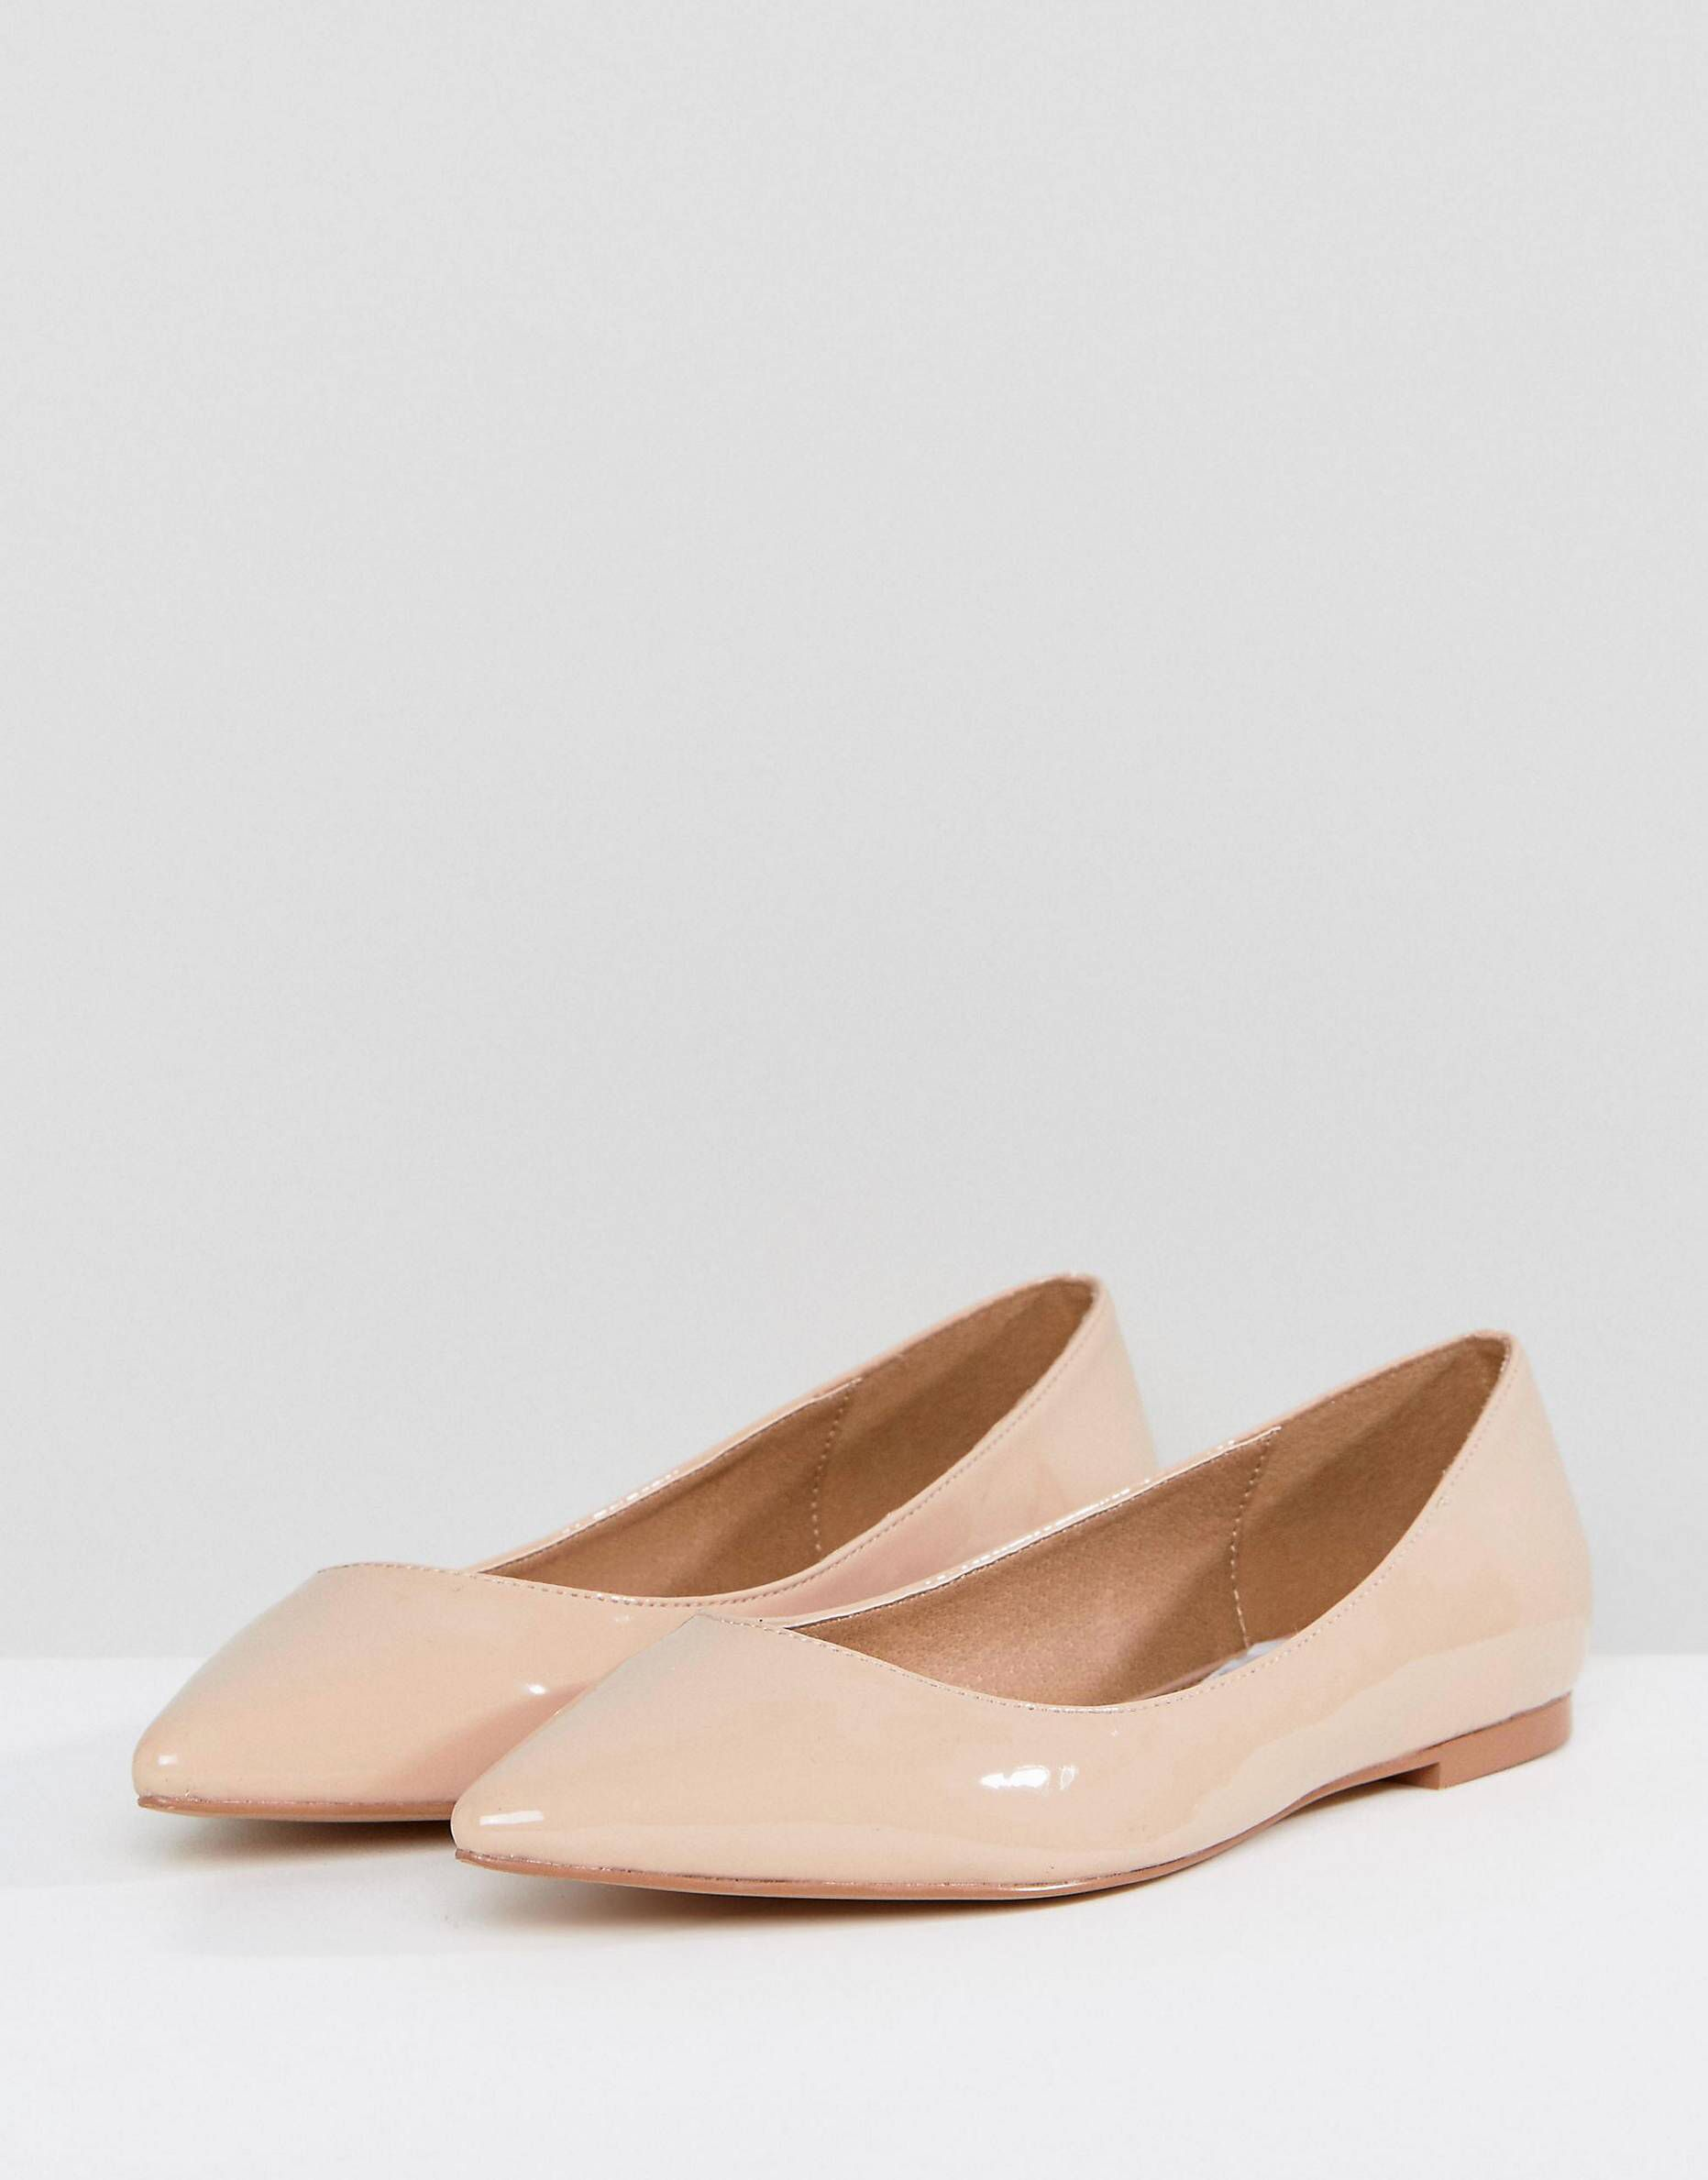 8a75a4accf LATCH Pointed Ballet Flats in 2019 | Fall / Winter 2 0 1 7 | Pointed ...